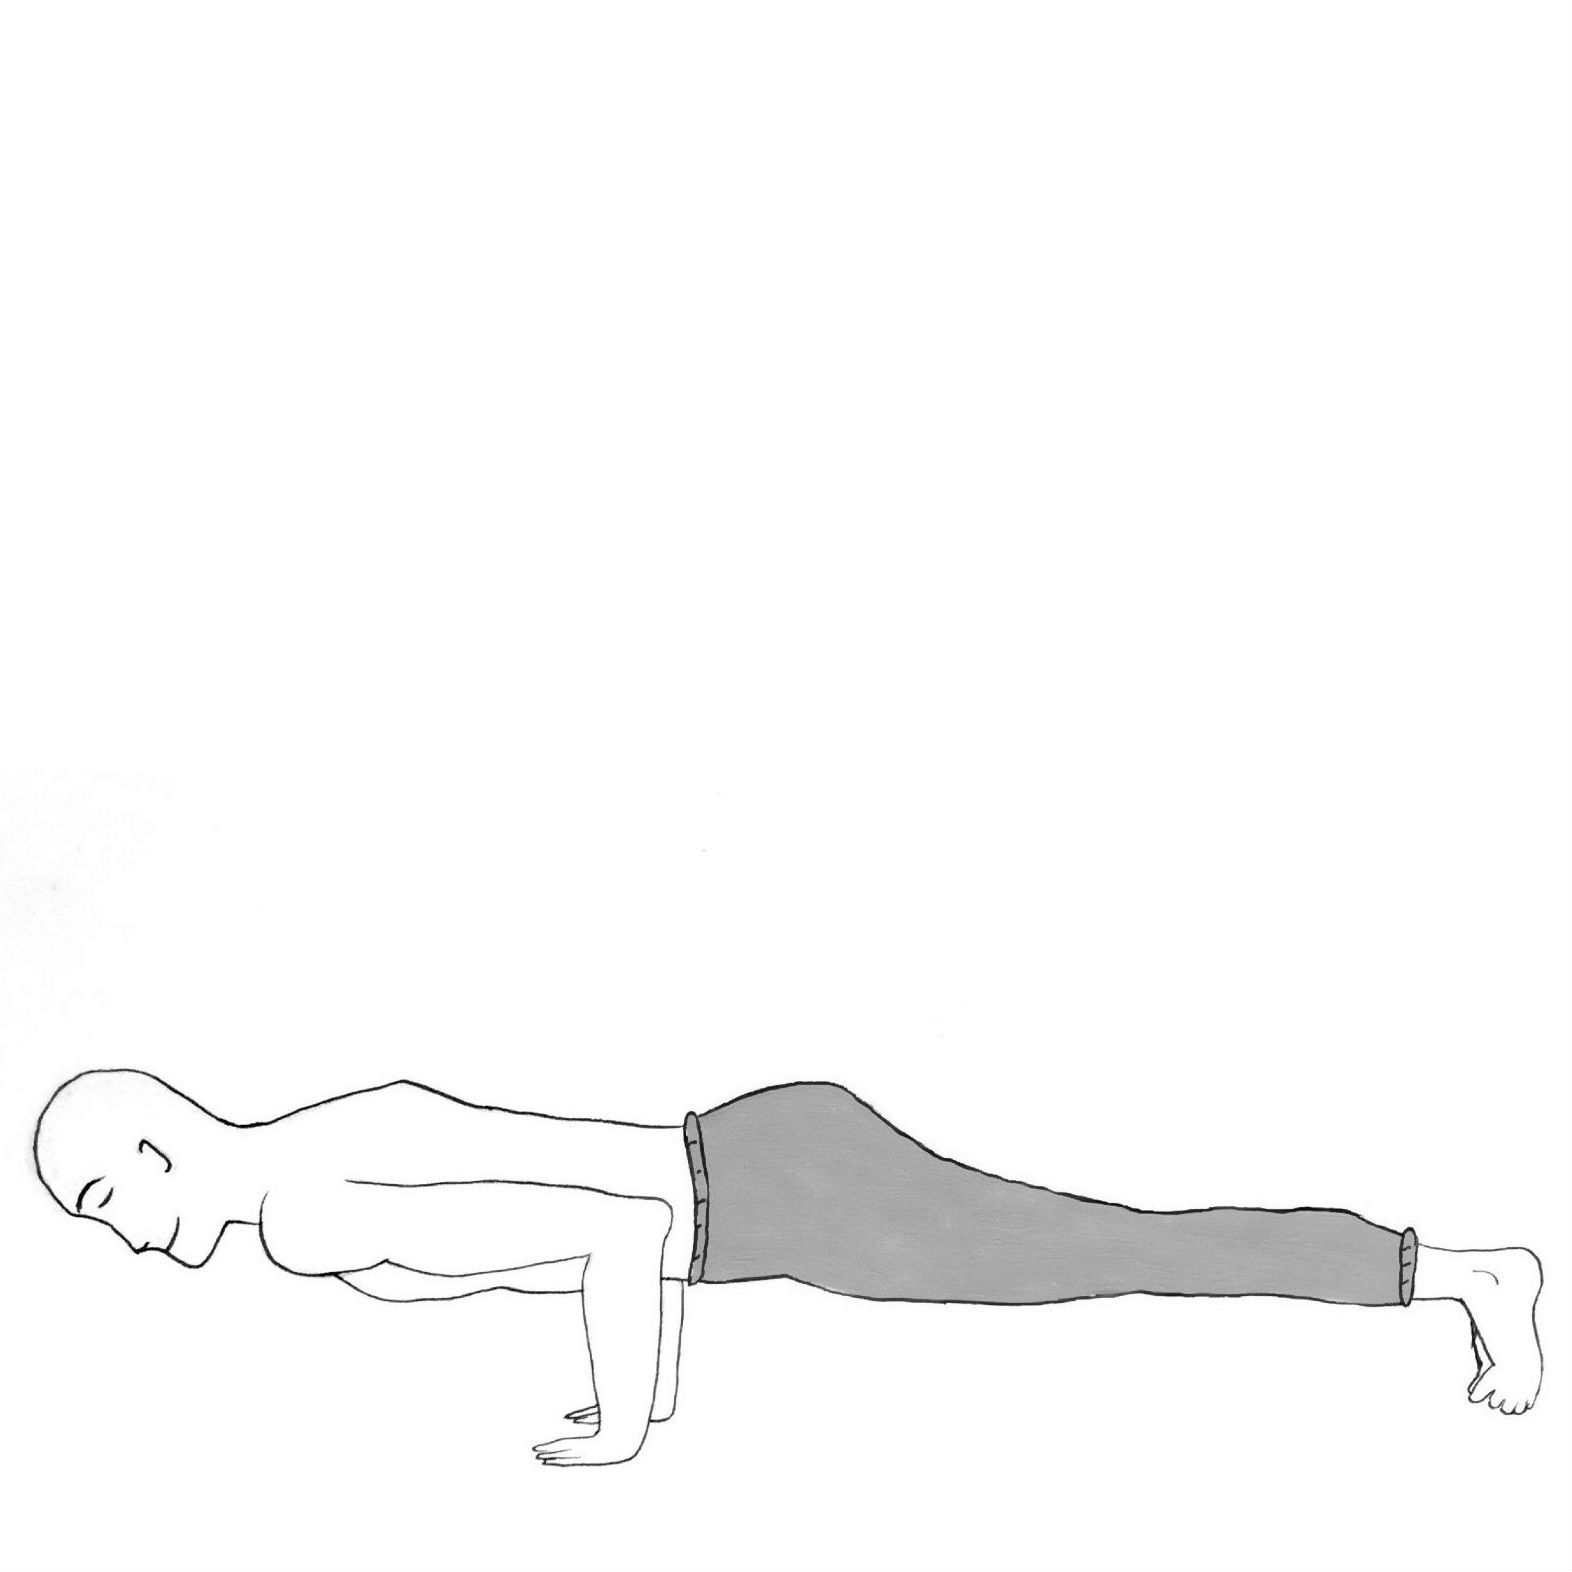 Low Plank - Chaturanga Dandasana